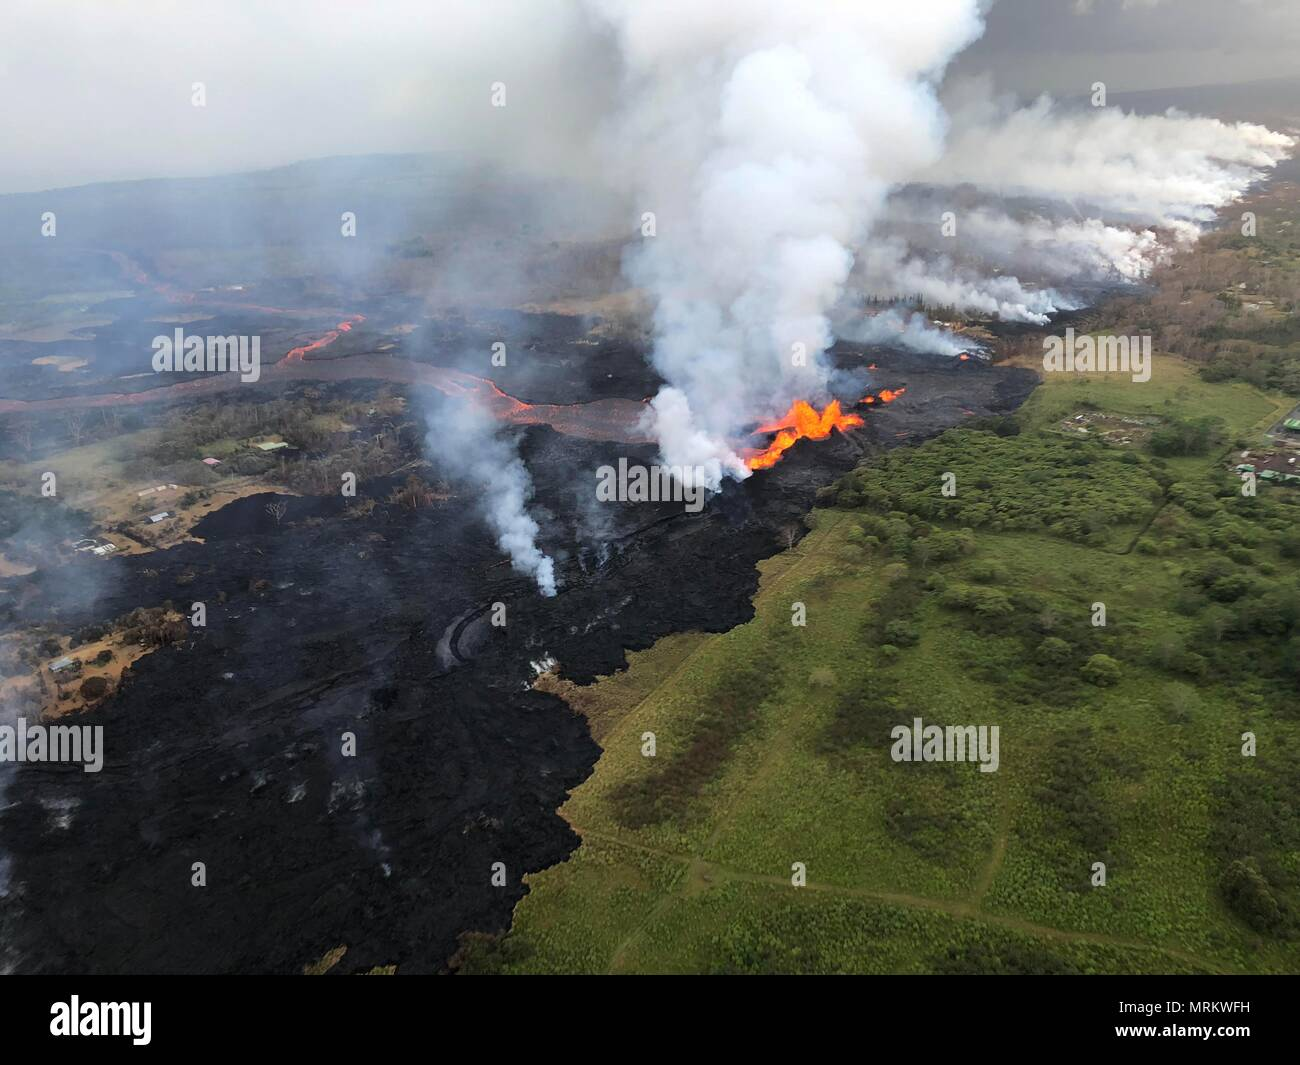 Channelized lava streams down fissure 22 from the eruption of the Kilauea volcano May 21, 2018 in Pahoa, Hawaii. Stock Photo